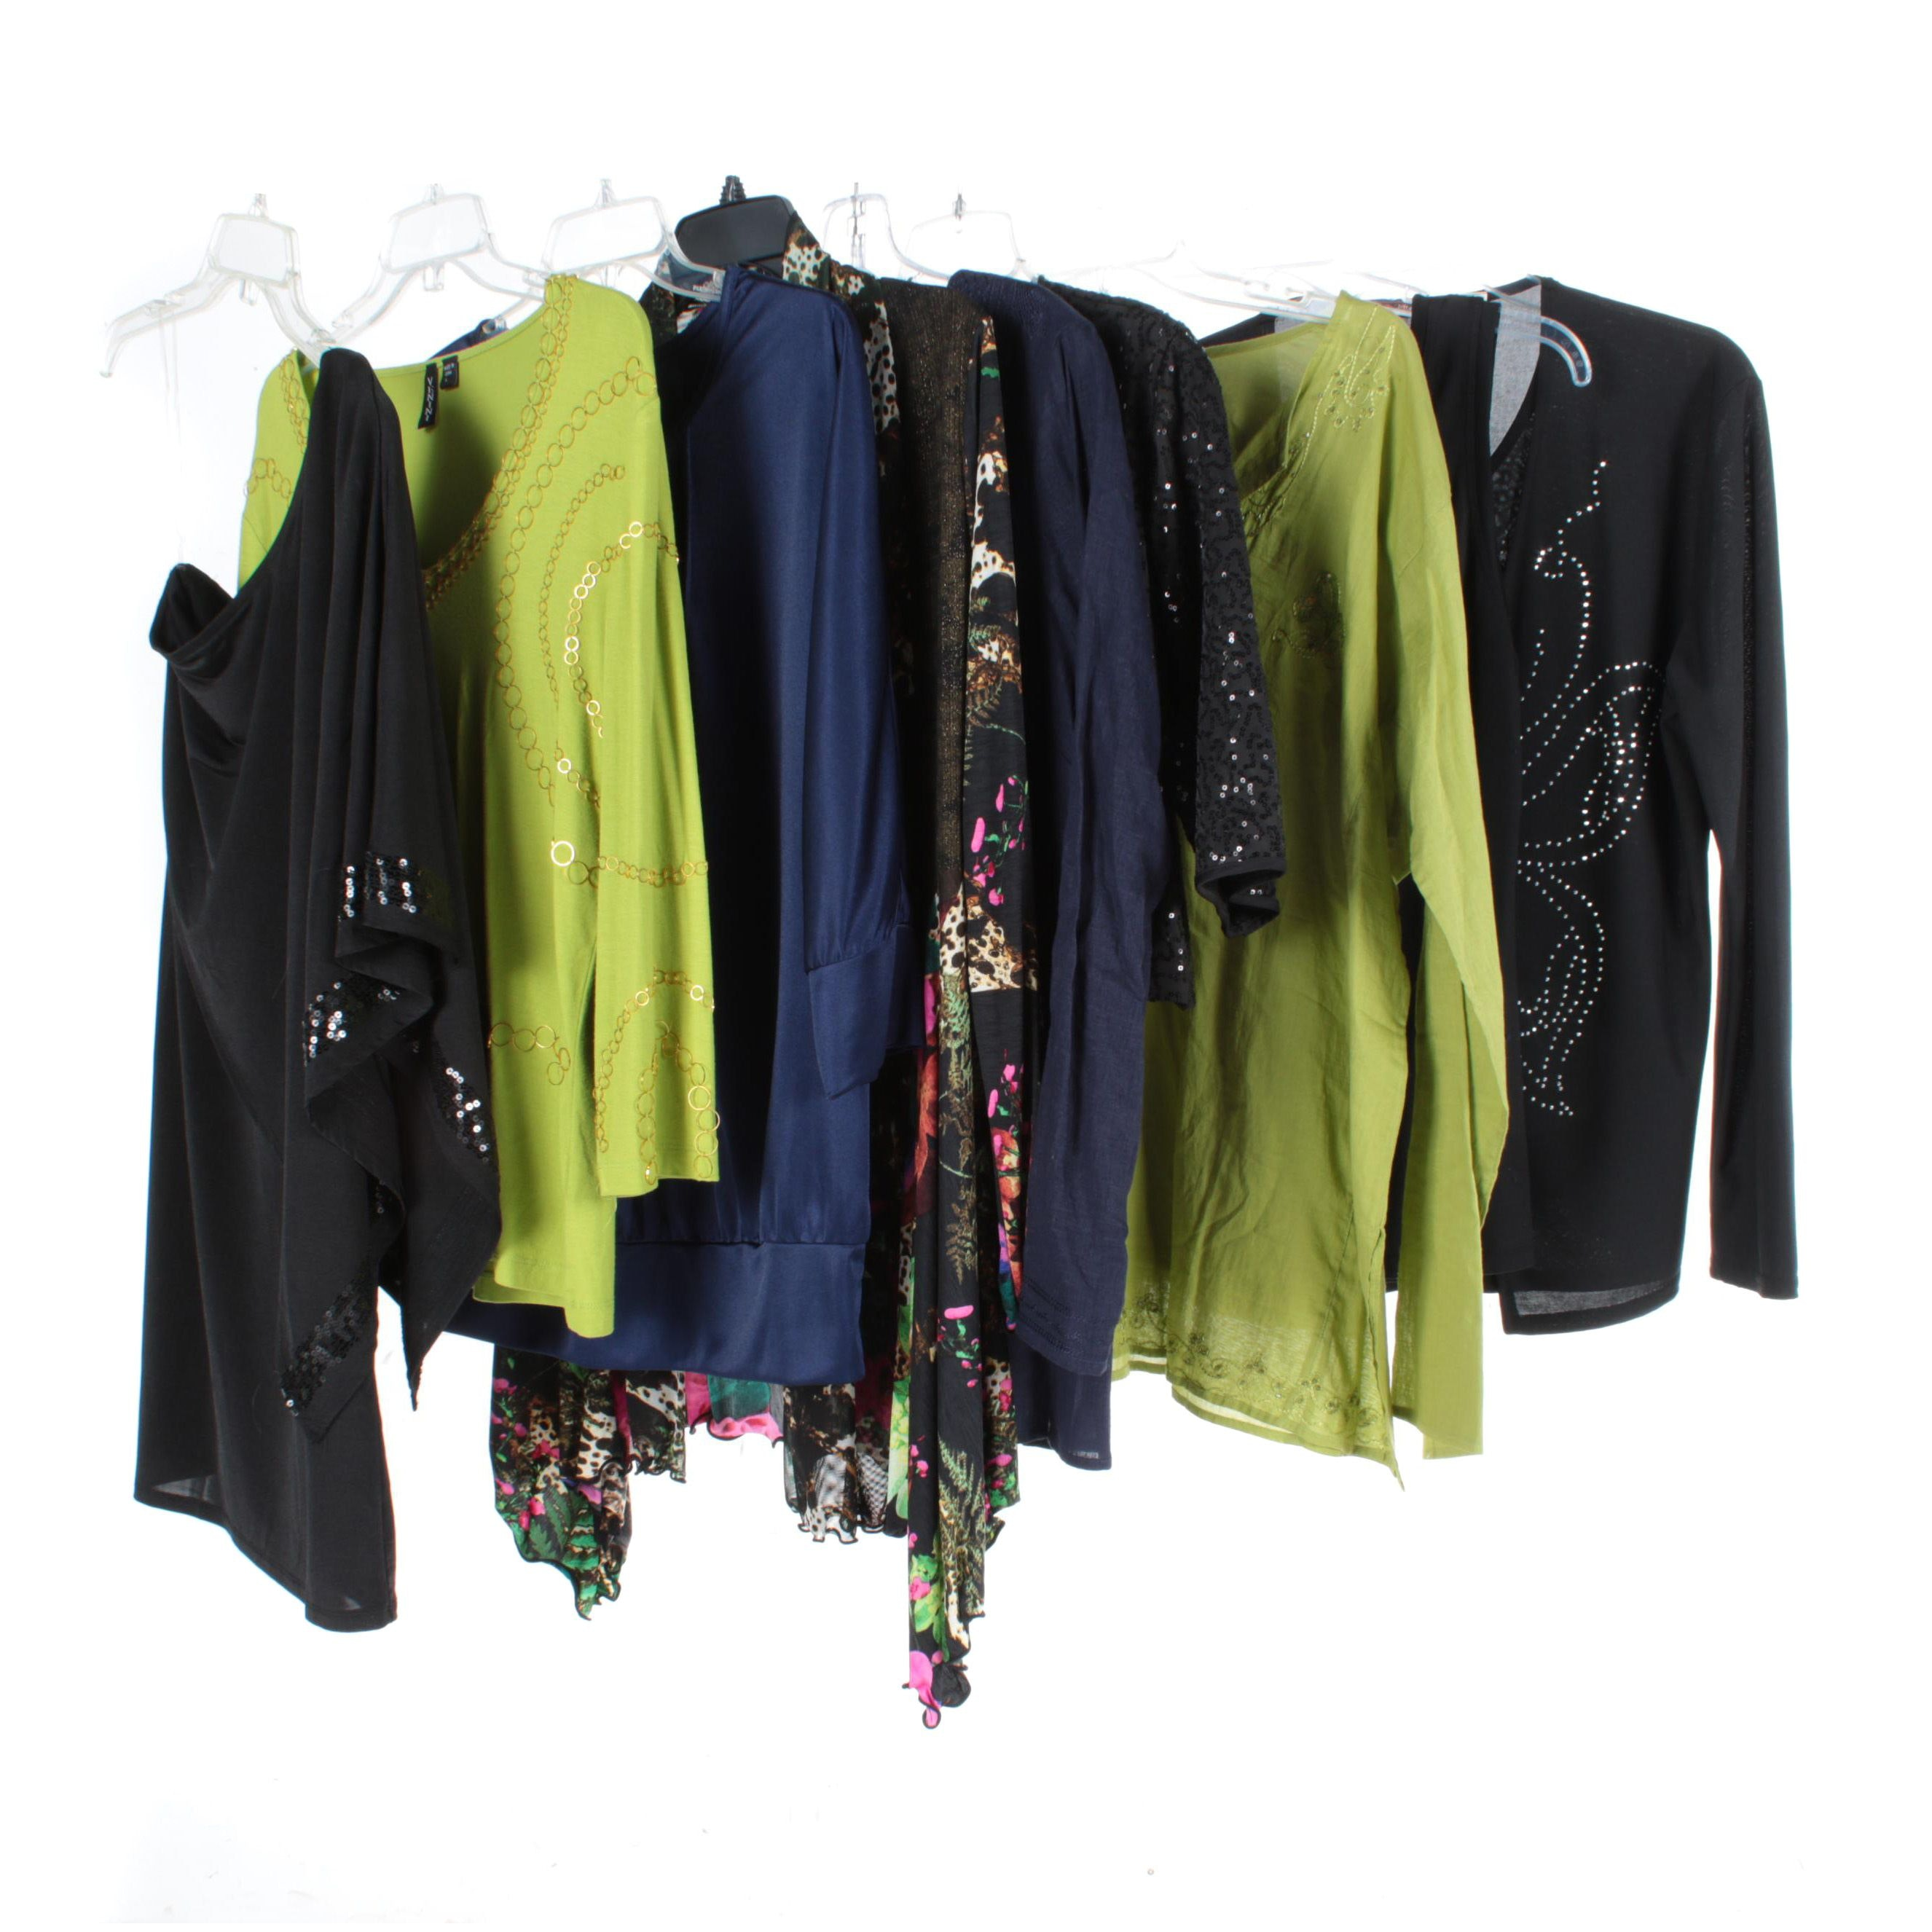 Women's Separates Variety in Black, Blue and Green